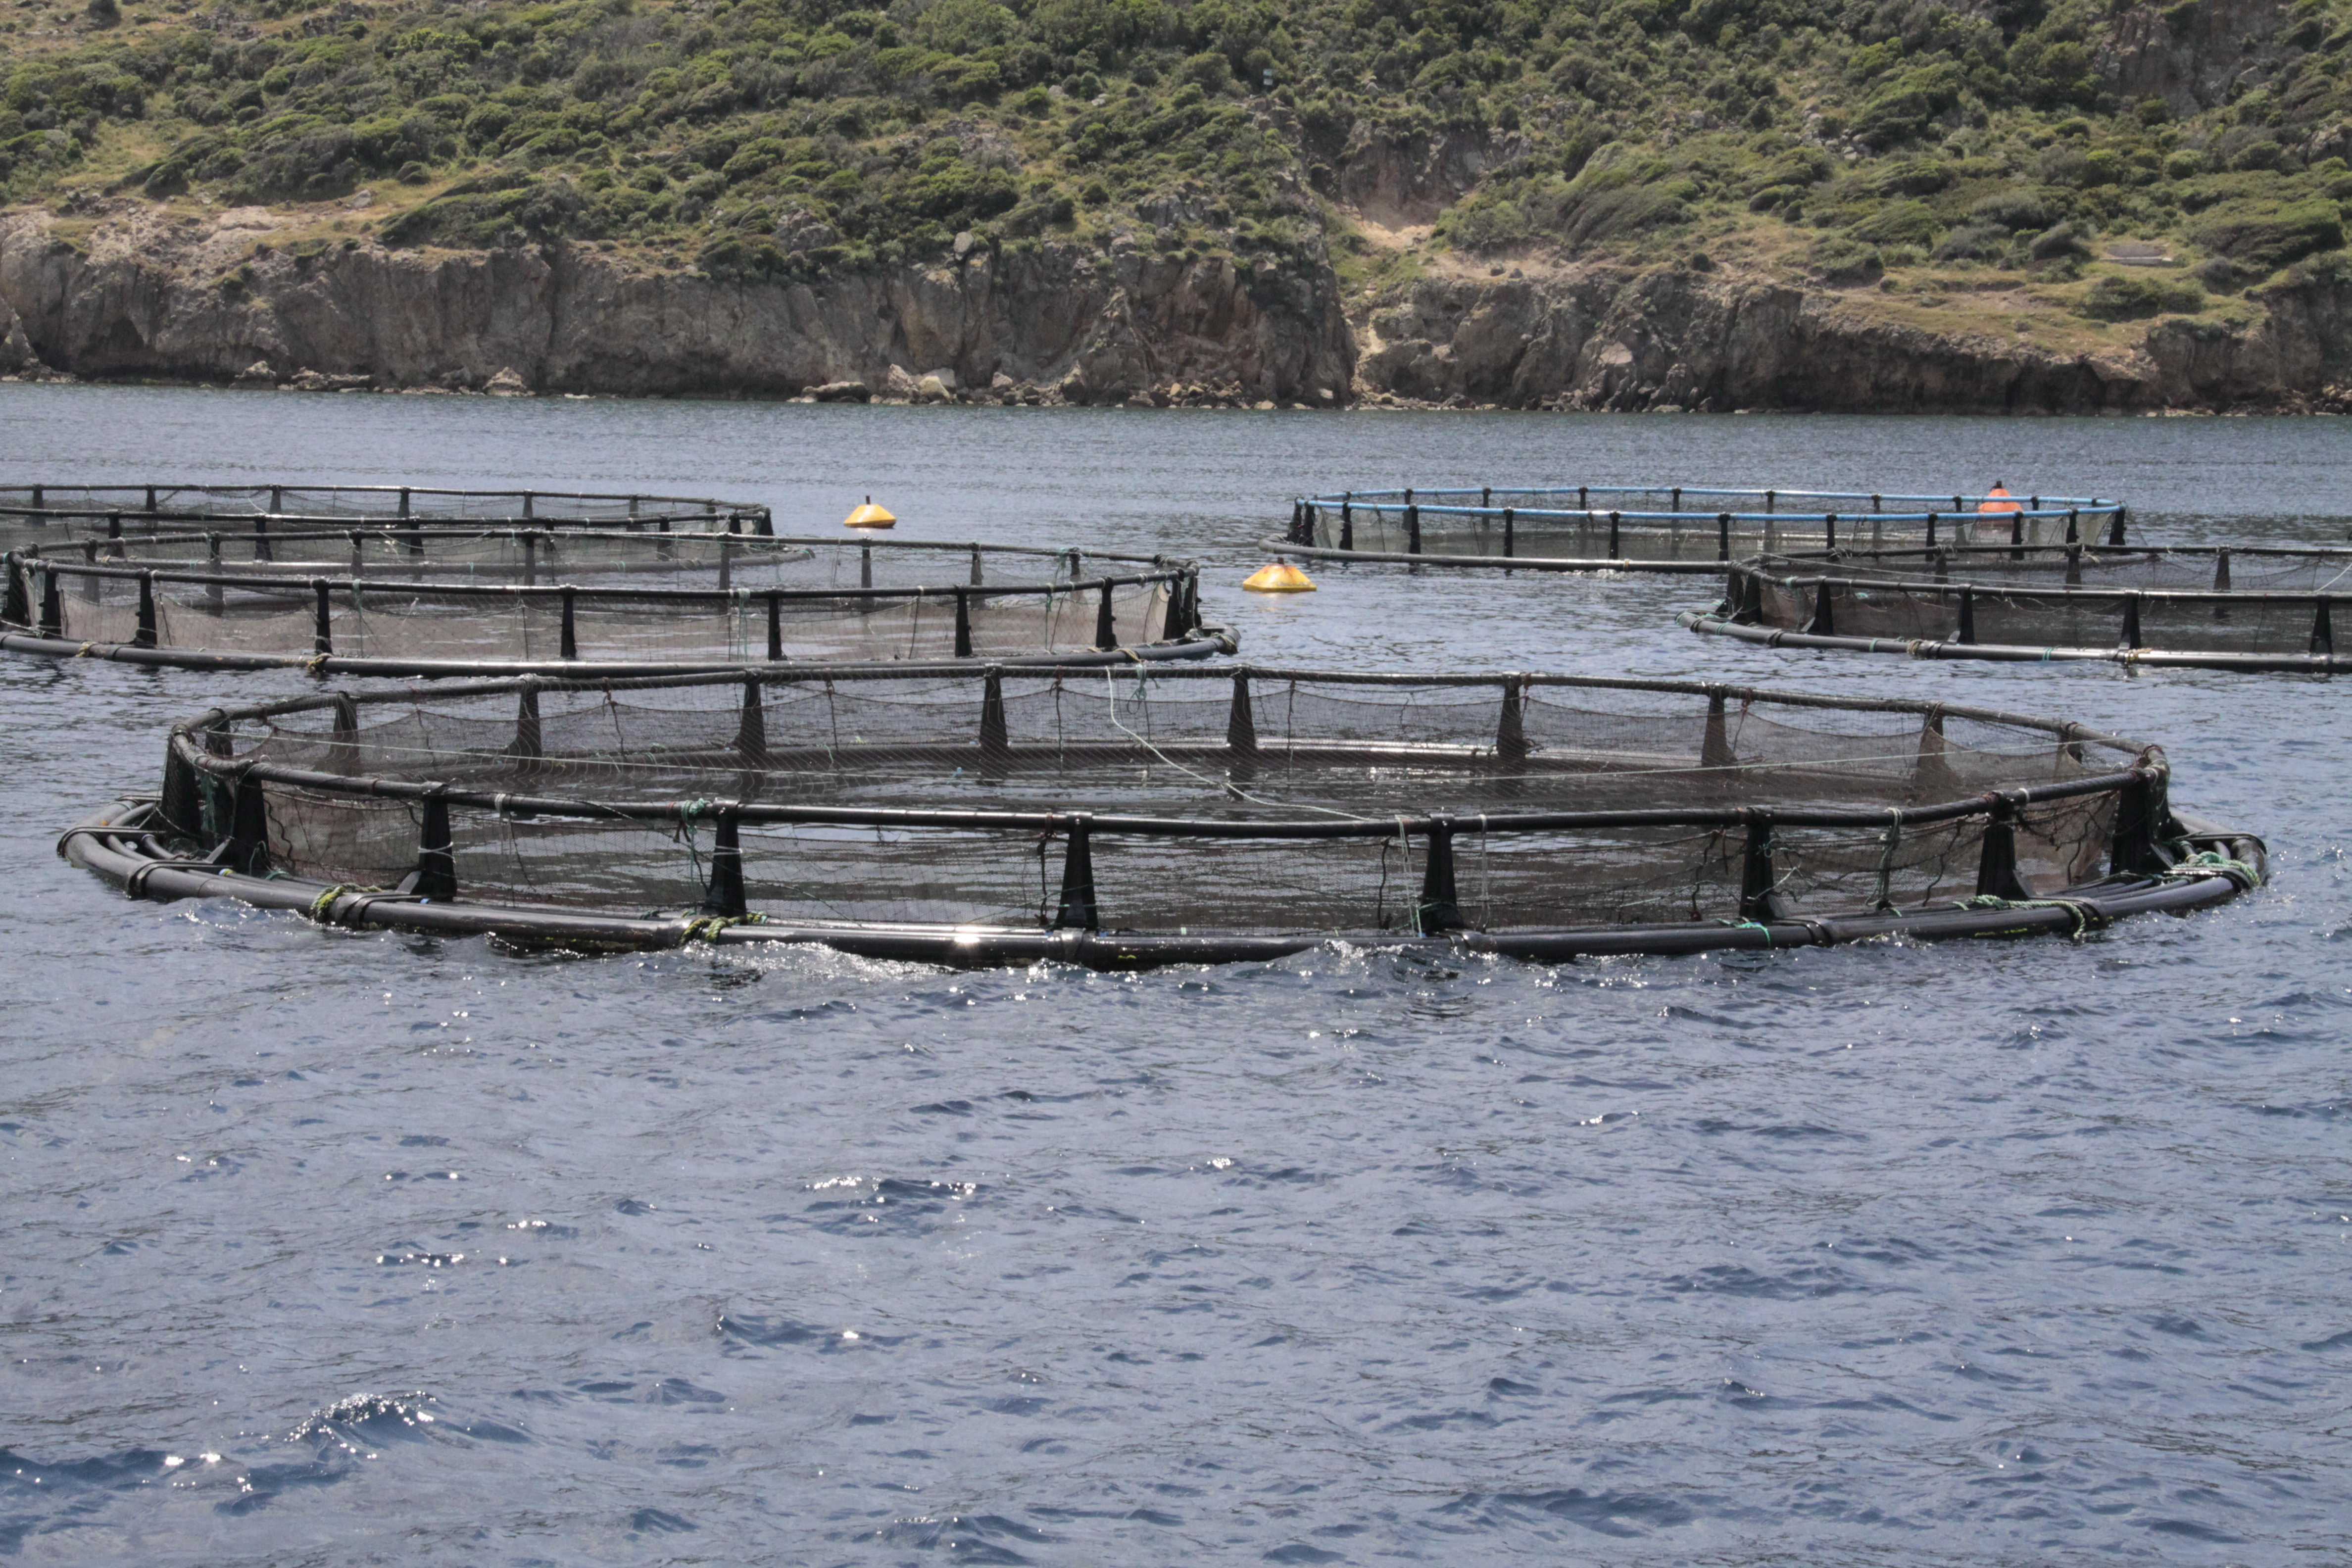 Aquaculture site in the Mediterranean II